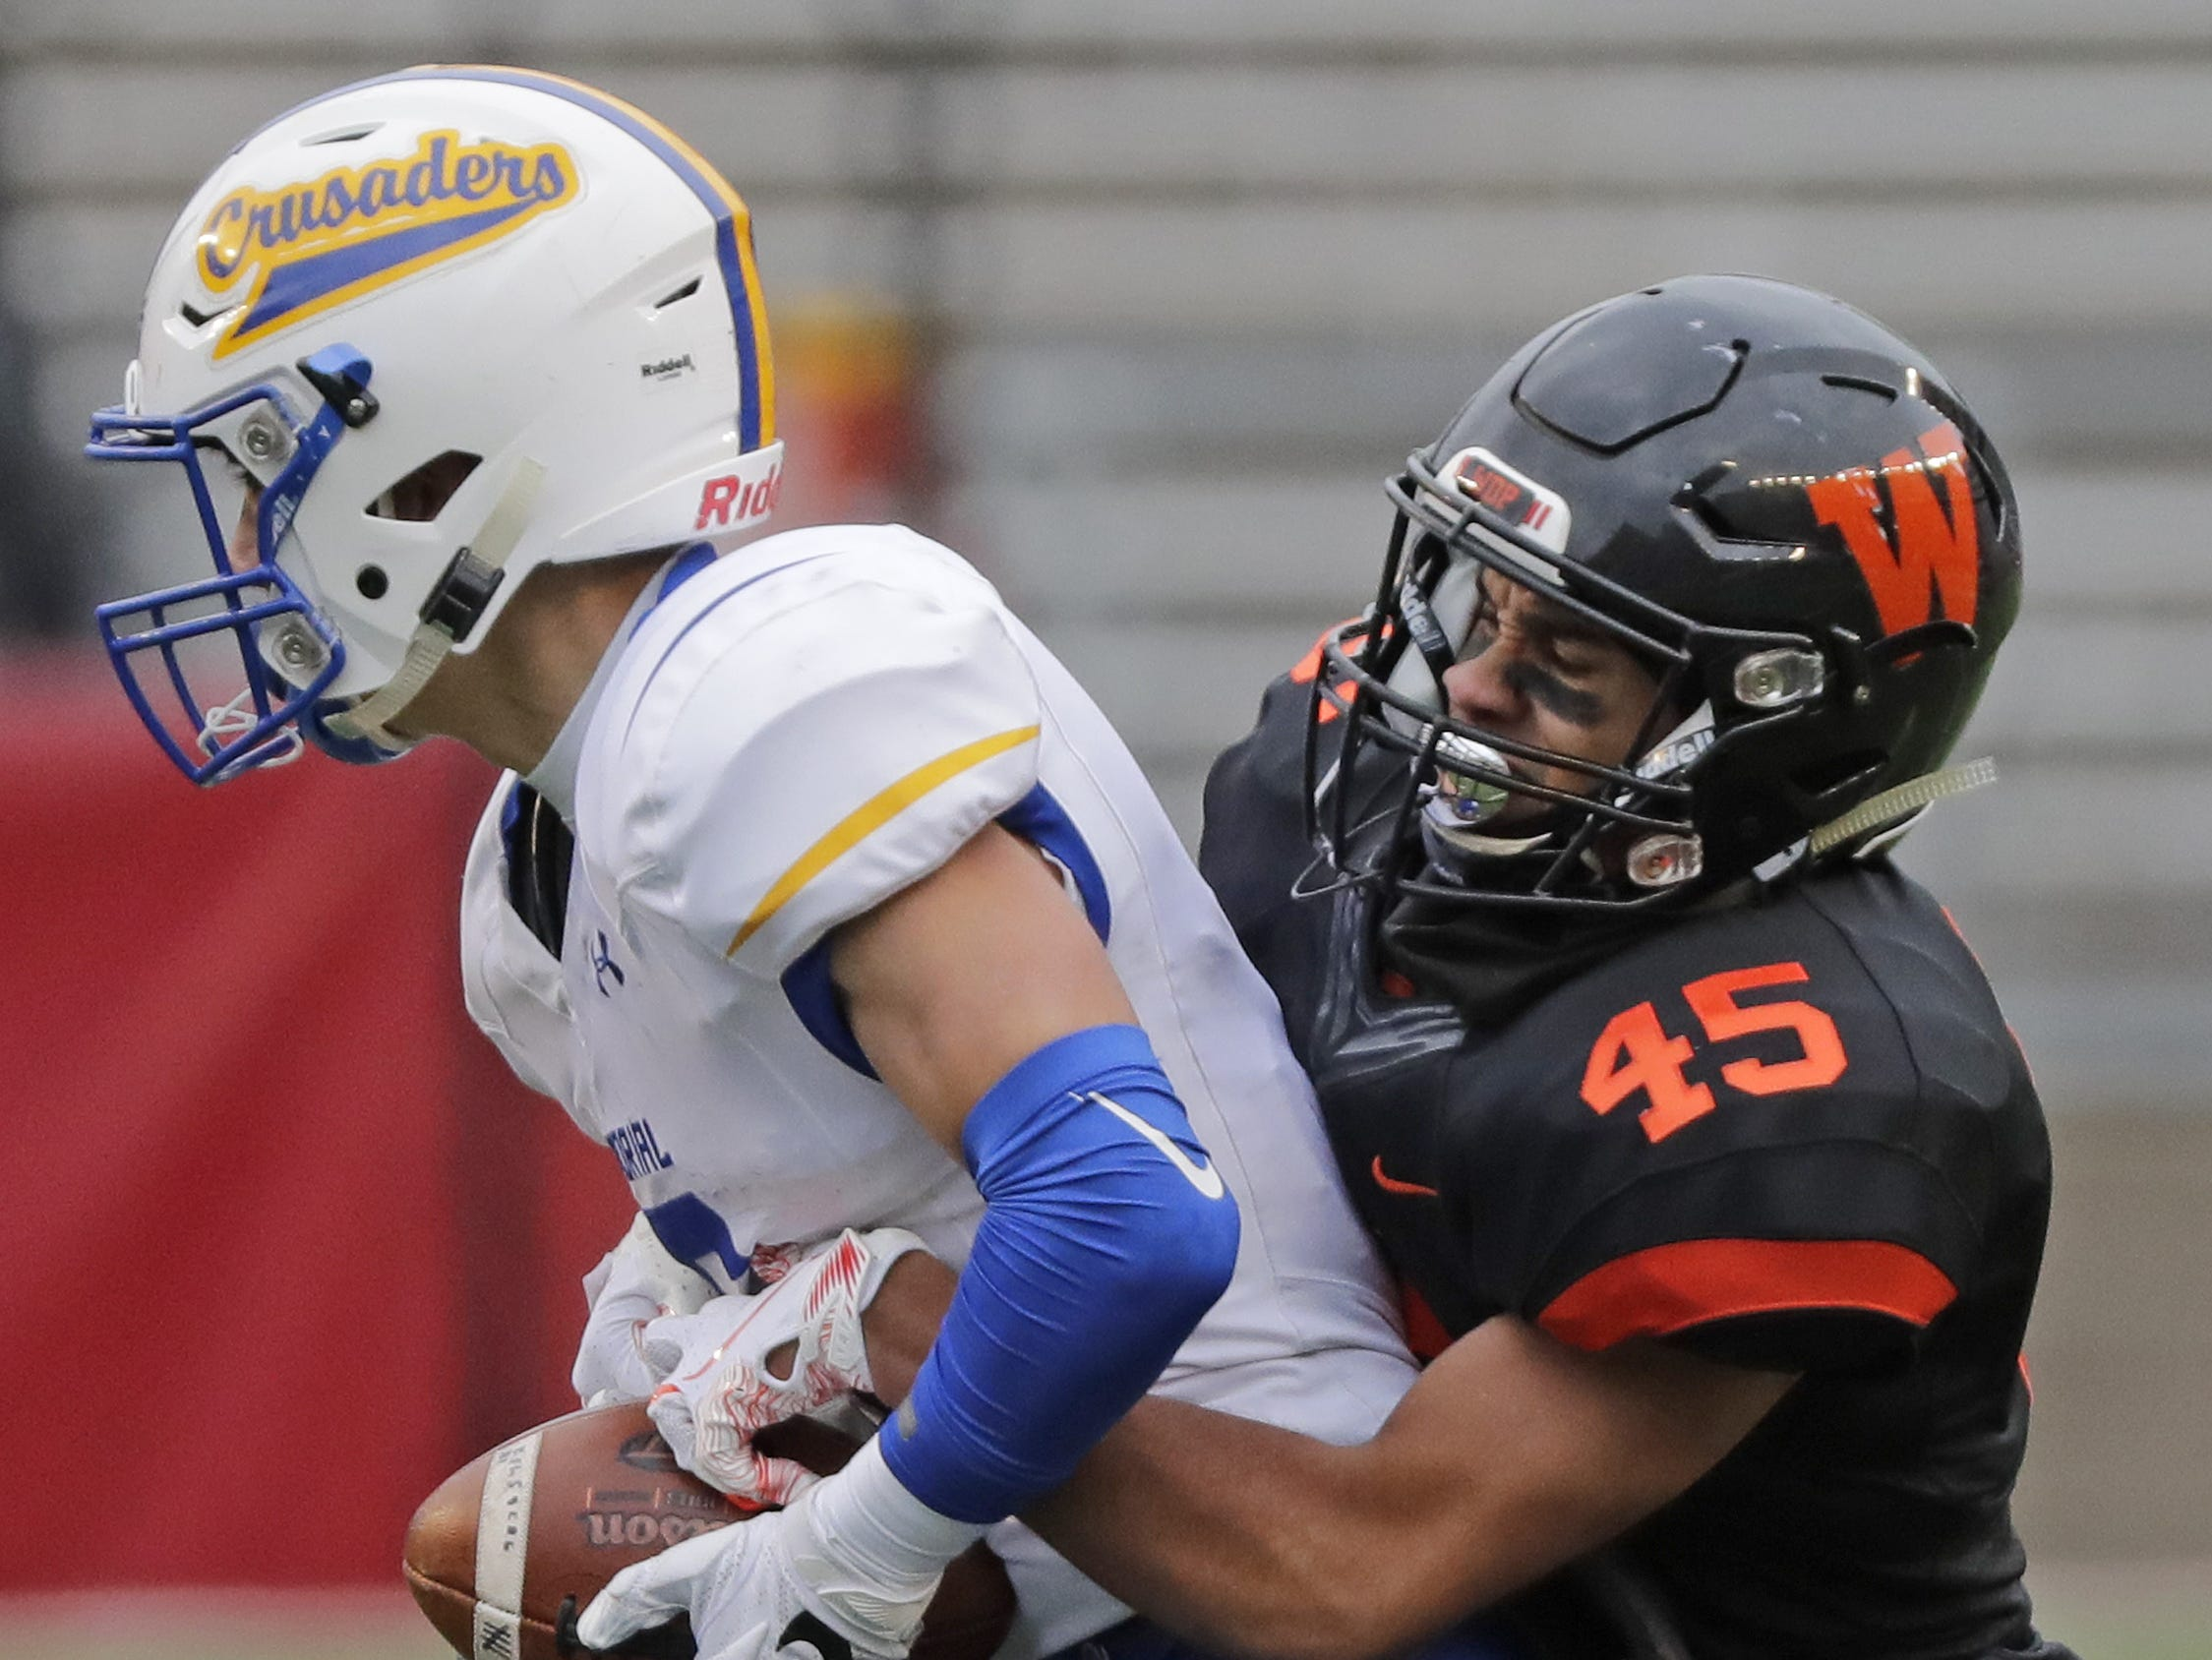 West De Pere's Isiah Burdette (45) causes a fumble by Catholic Memorial's Joe Sikma (6) in the WIAA Division 3 championship game at Camp Randall Stadium on Friday, November 16, 2018 in Madison, Wis.